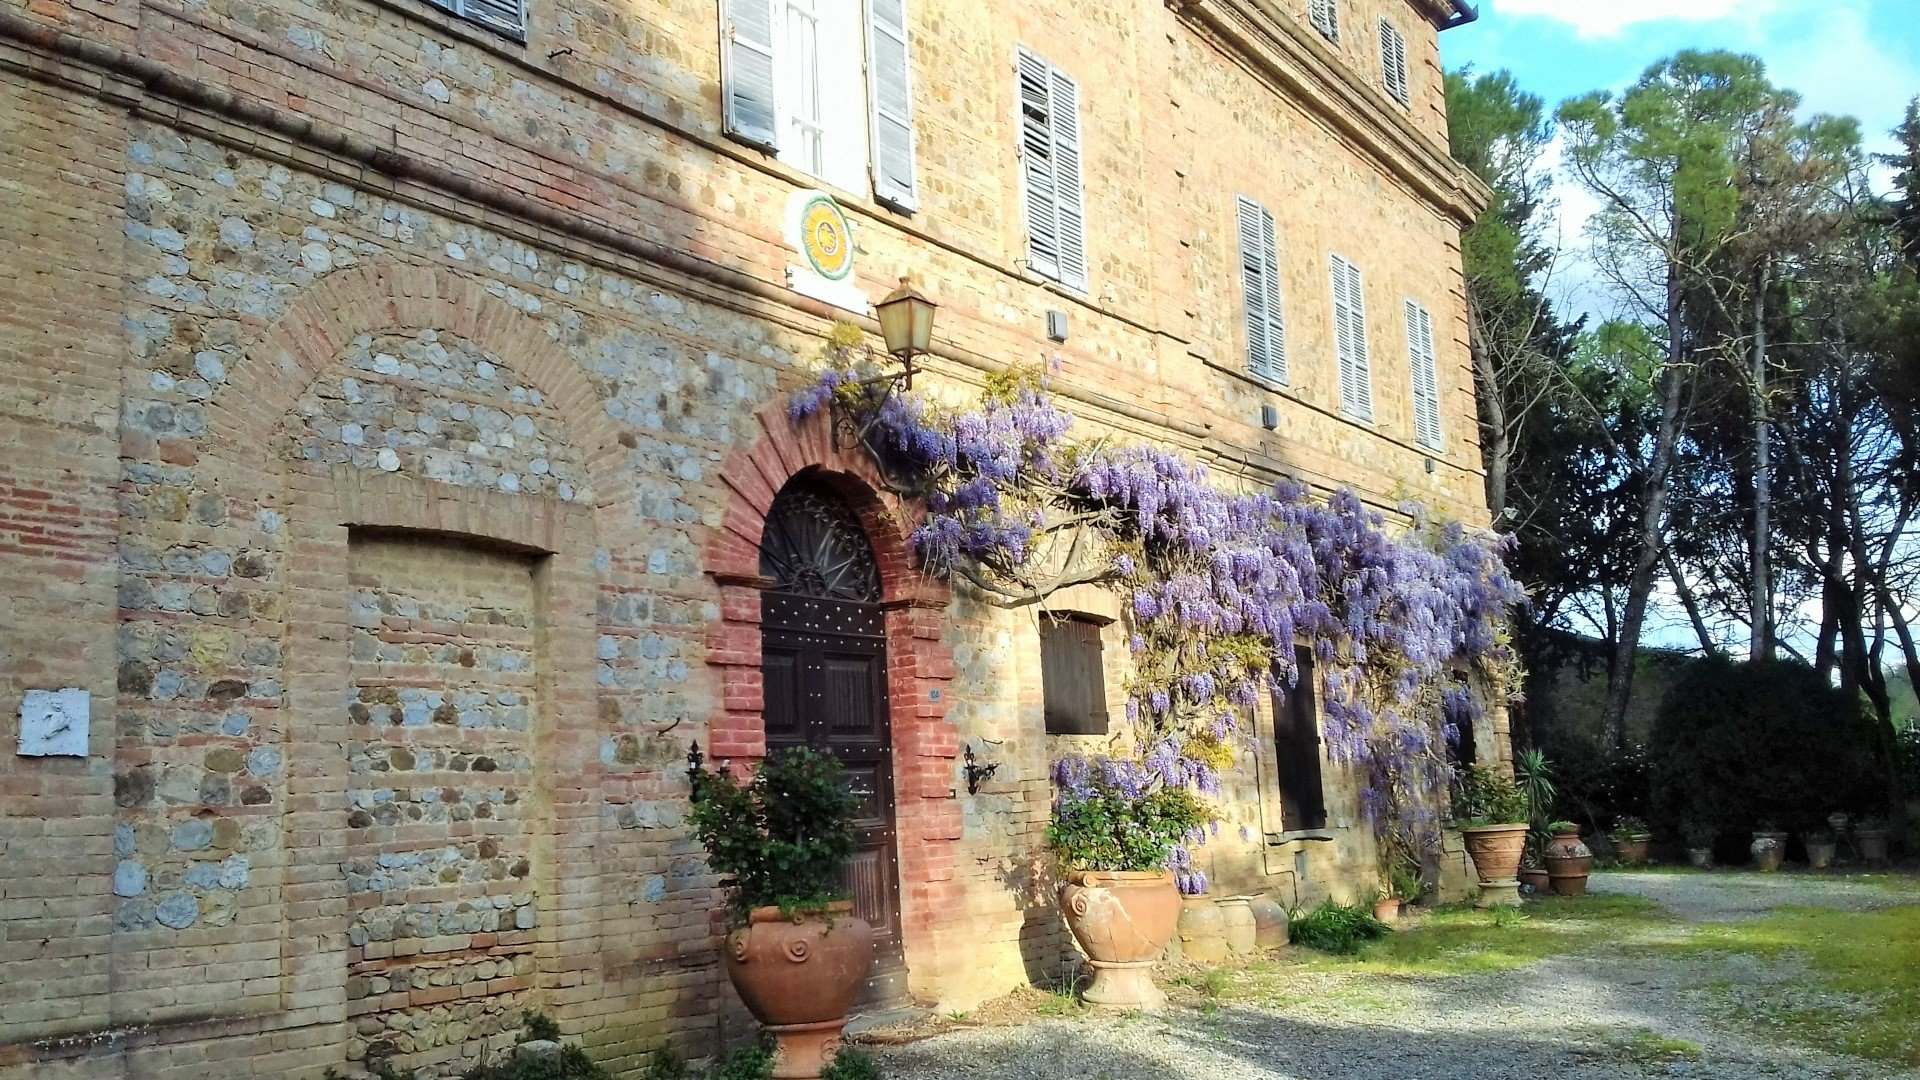 LARGE VILLA IN UMBRIA DATING FROM 1700'S OF BOTH HISTORIC AND ARTISTIC INTEREST